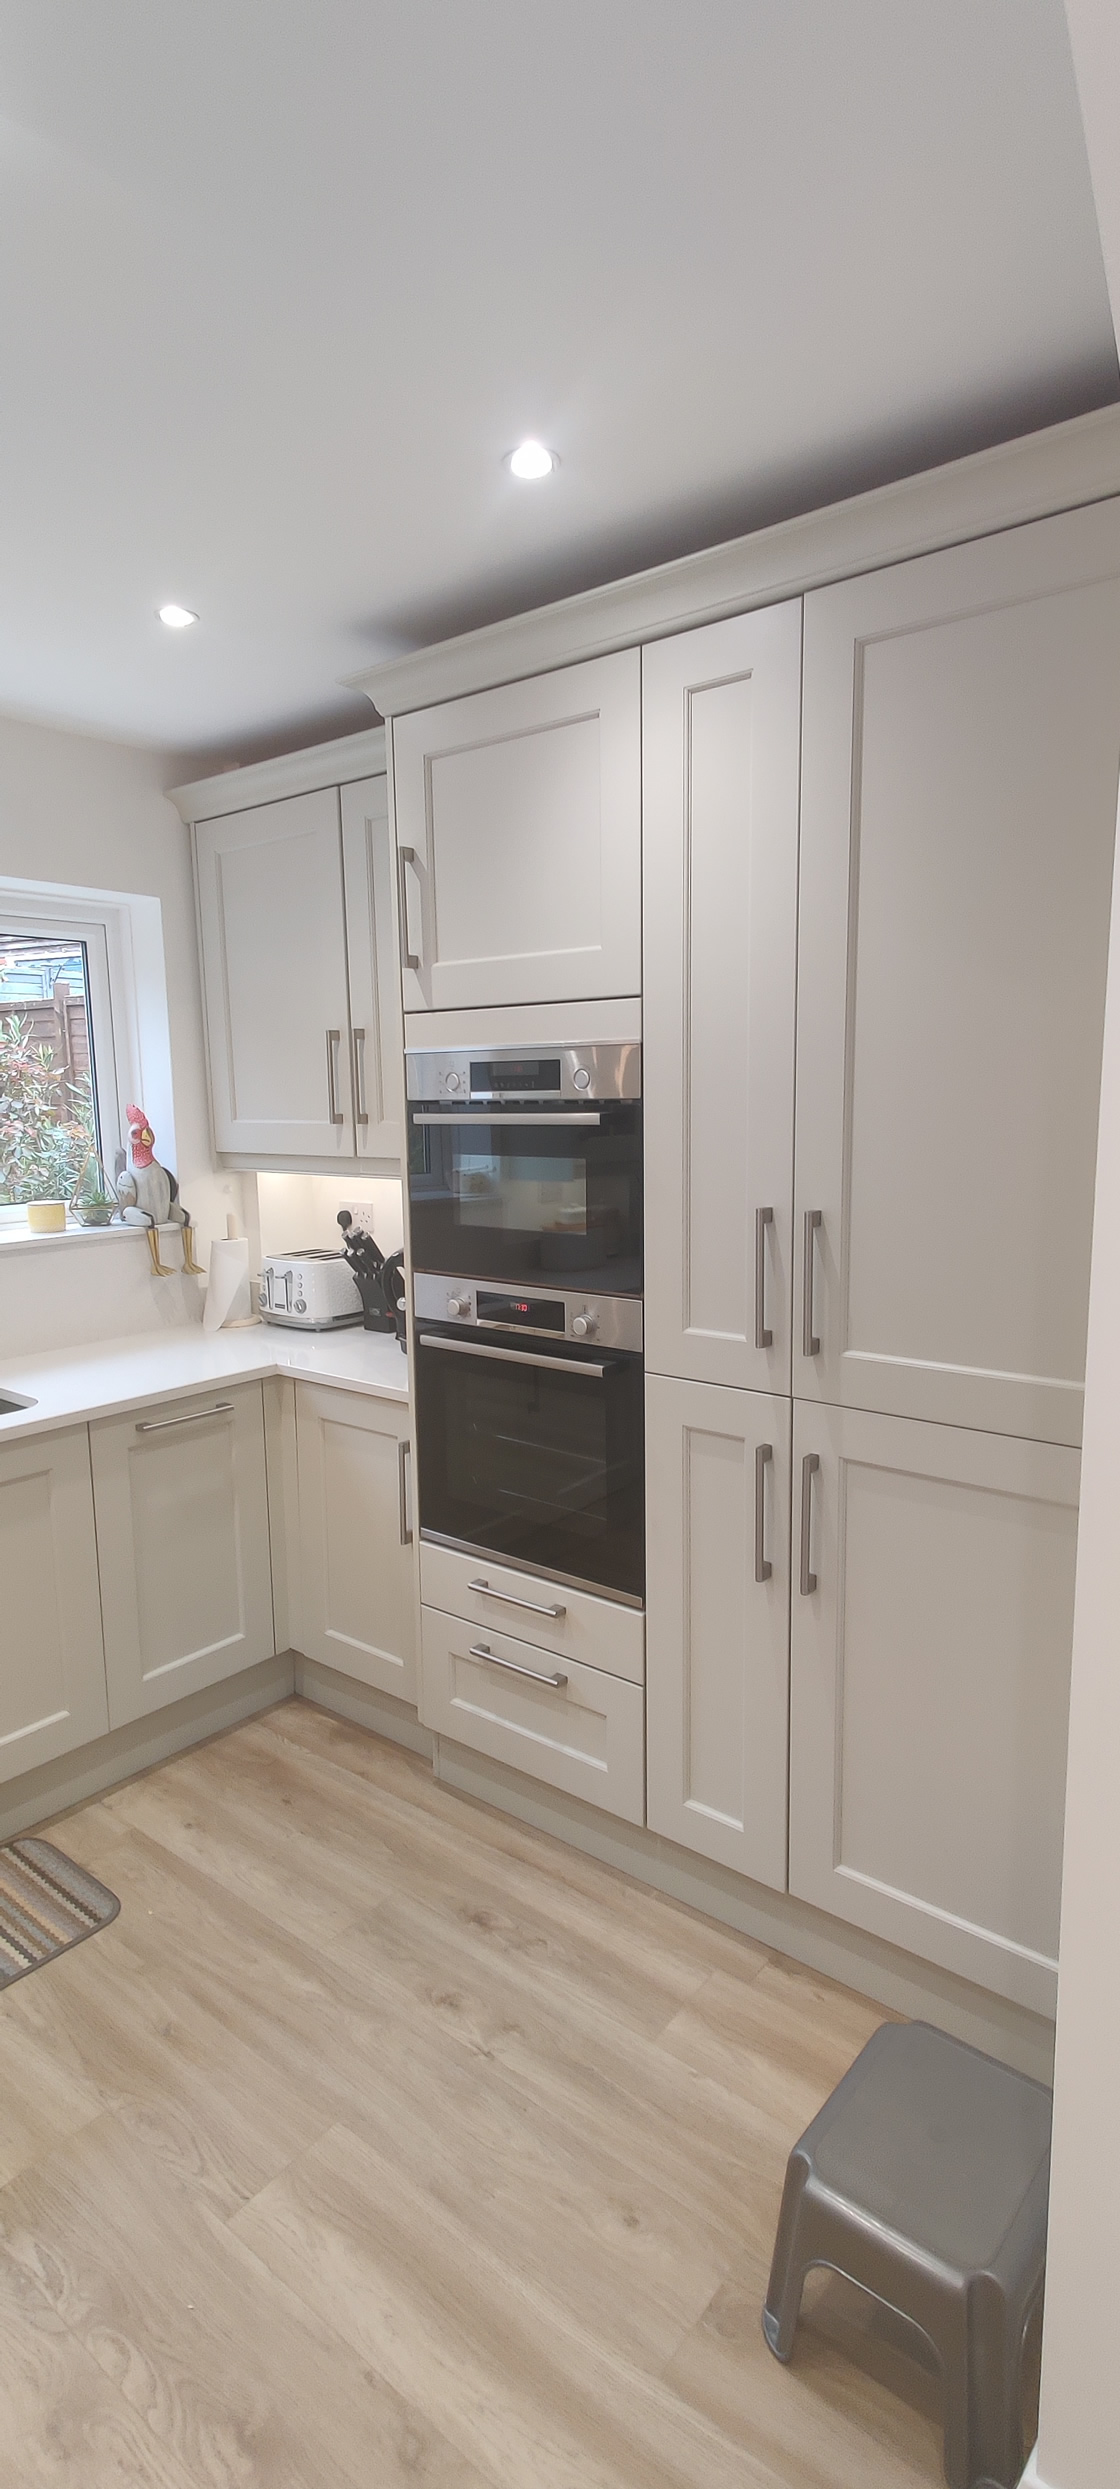 New Shaker Kitchen in Mussel Installed in Dorking Surrey - Punchbowl (15)